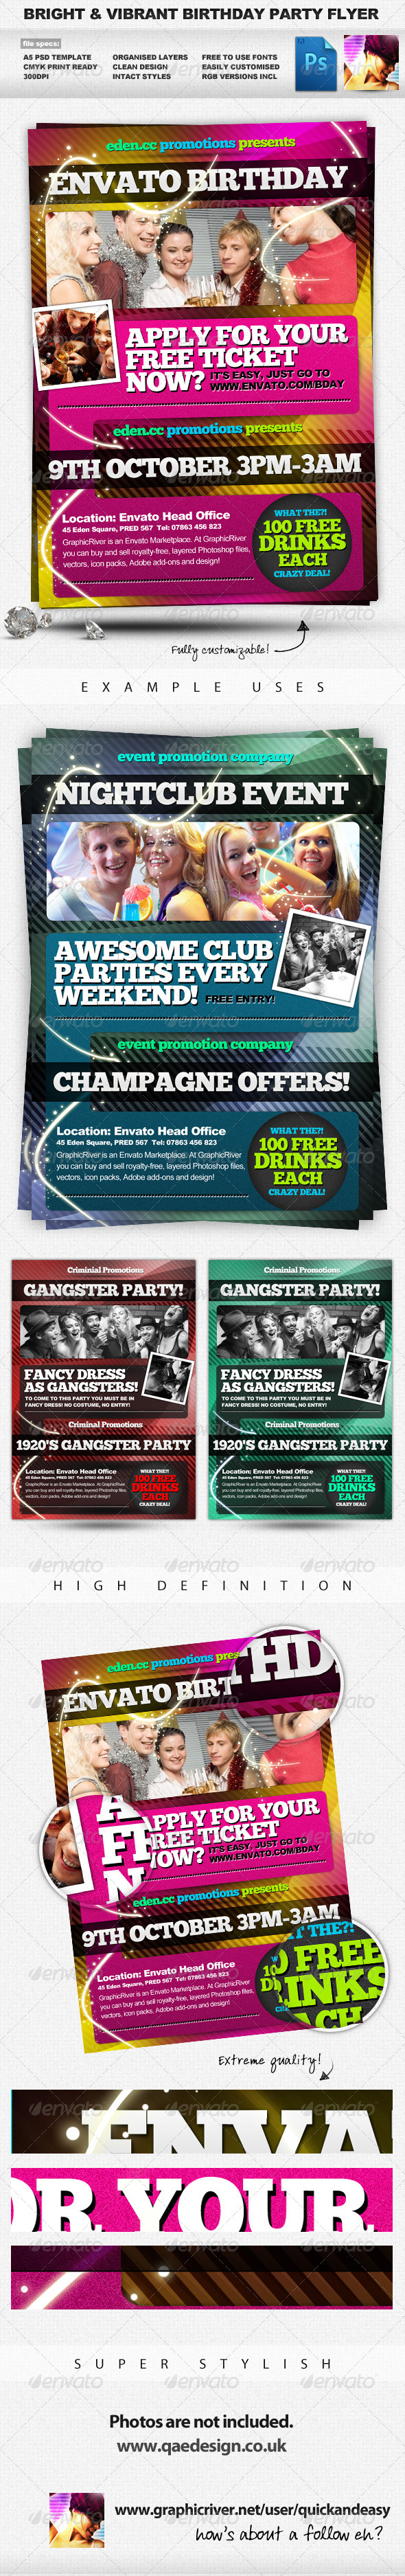 Bright, Vibrant & Energetic A5 Party Flyer - Clubs & Parties Events